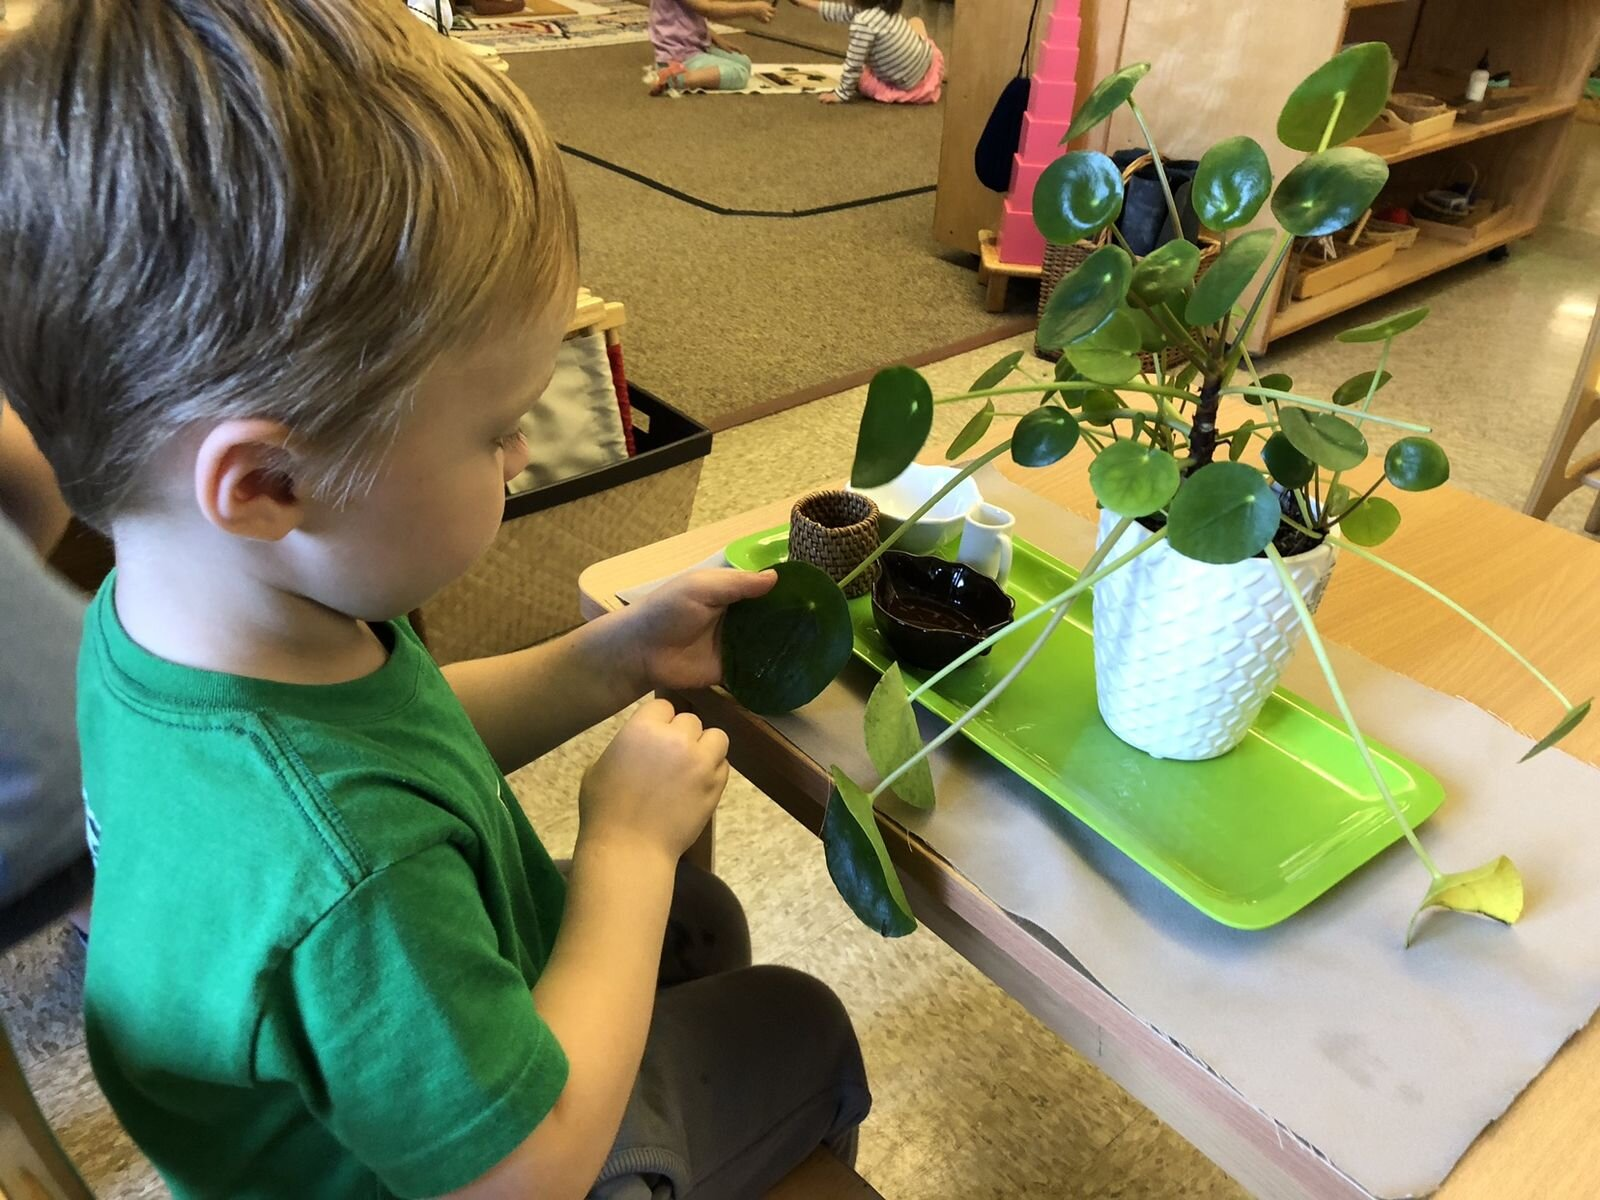 A three-year-old student takes care of a plant in his classroom. Notice that the bowl, water pitchers, and cotton balls are all the perfect size for his hands.